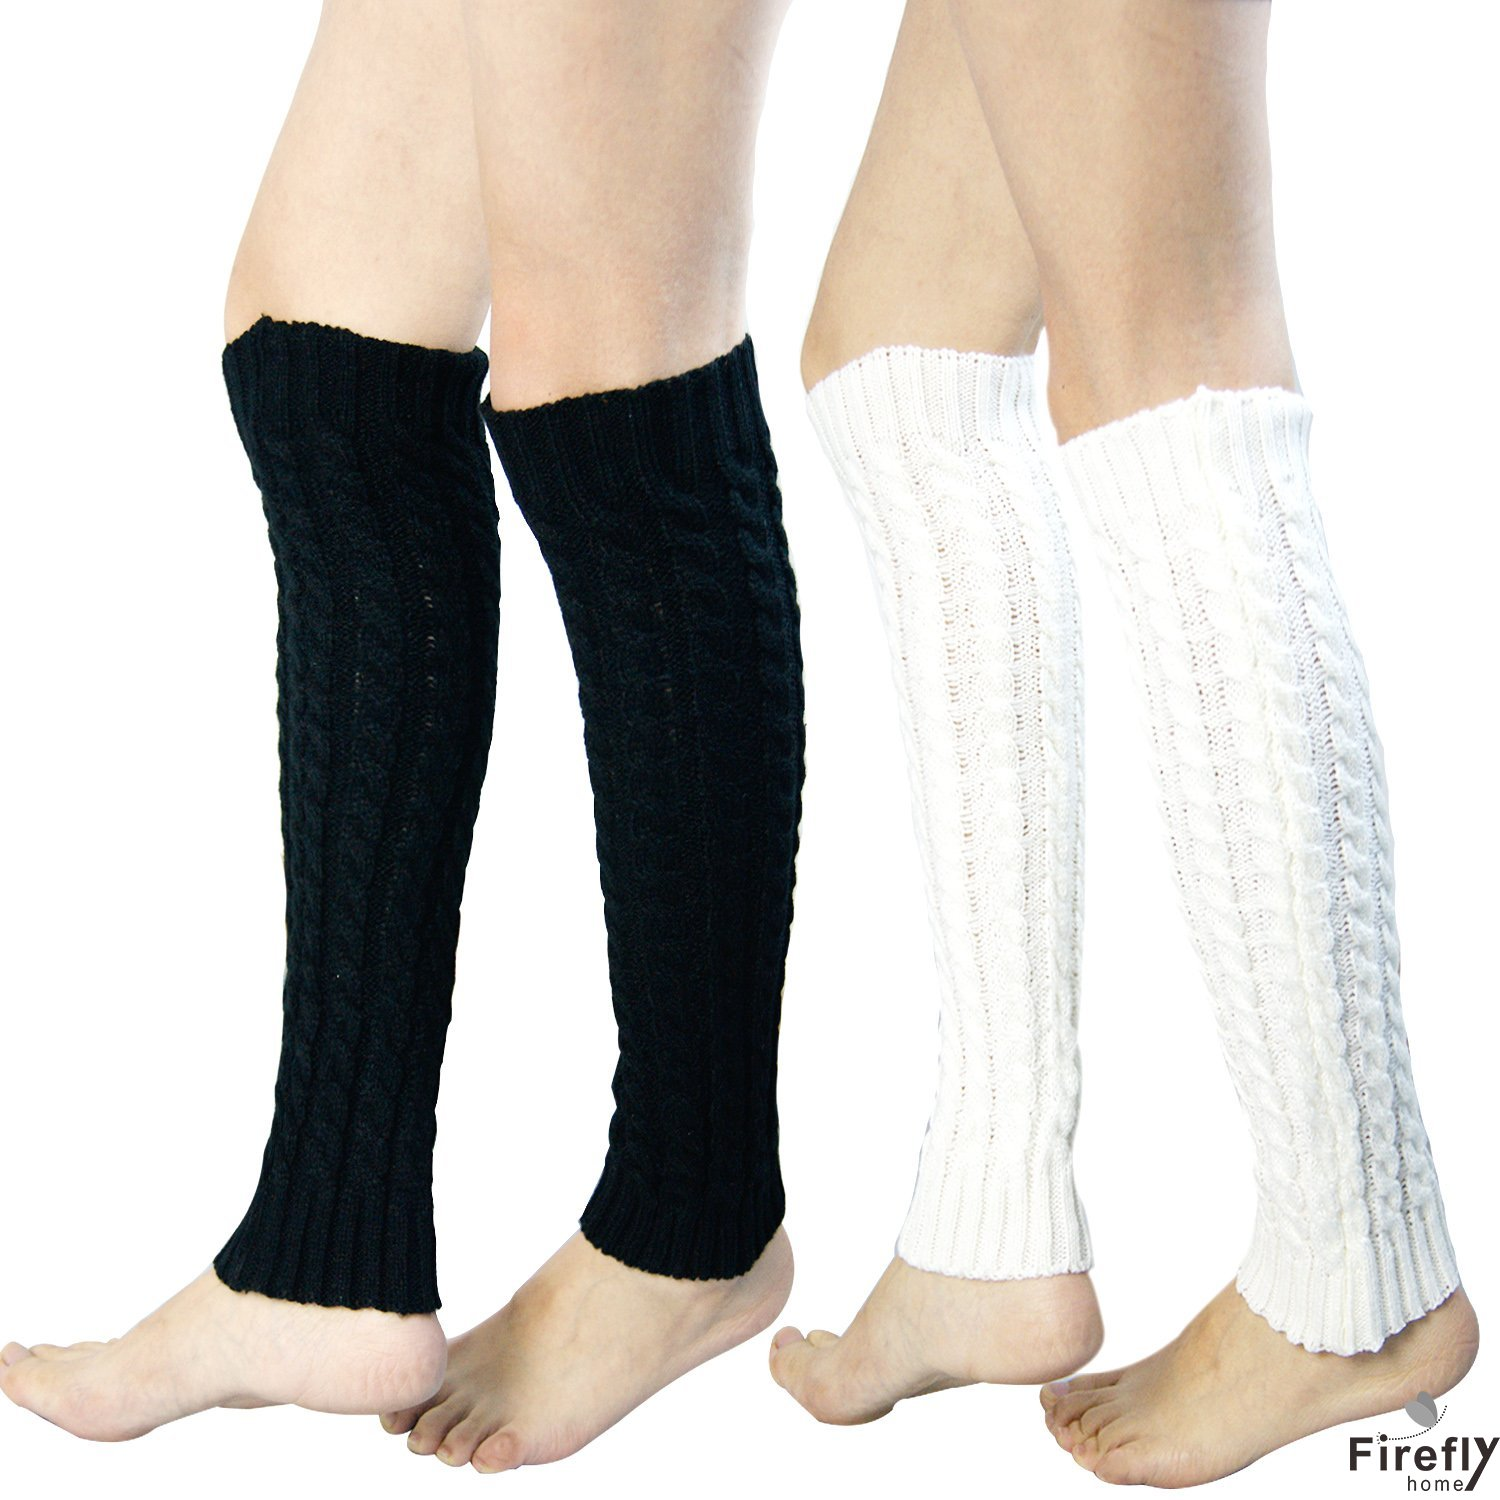 Fireflyhome 2 Pack of Womens Cable Knit Leg Warmers Knitted Croc